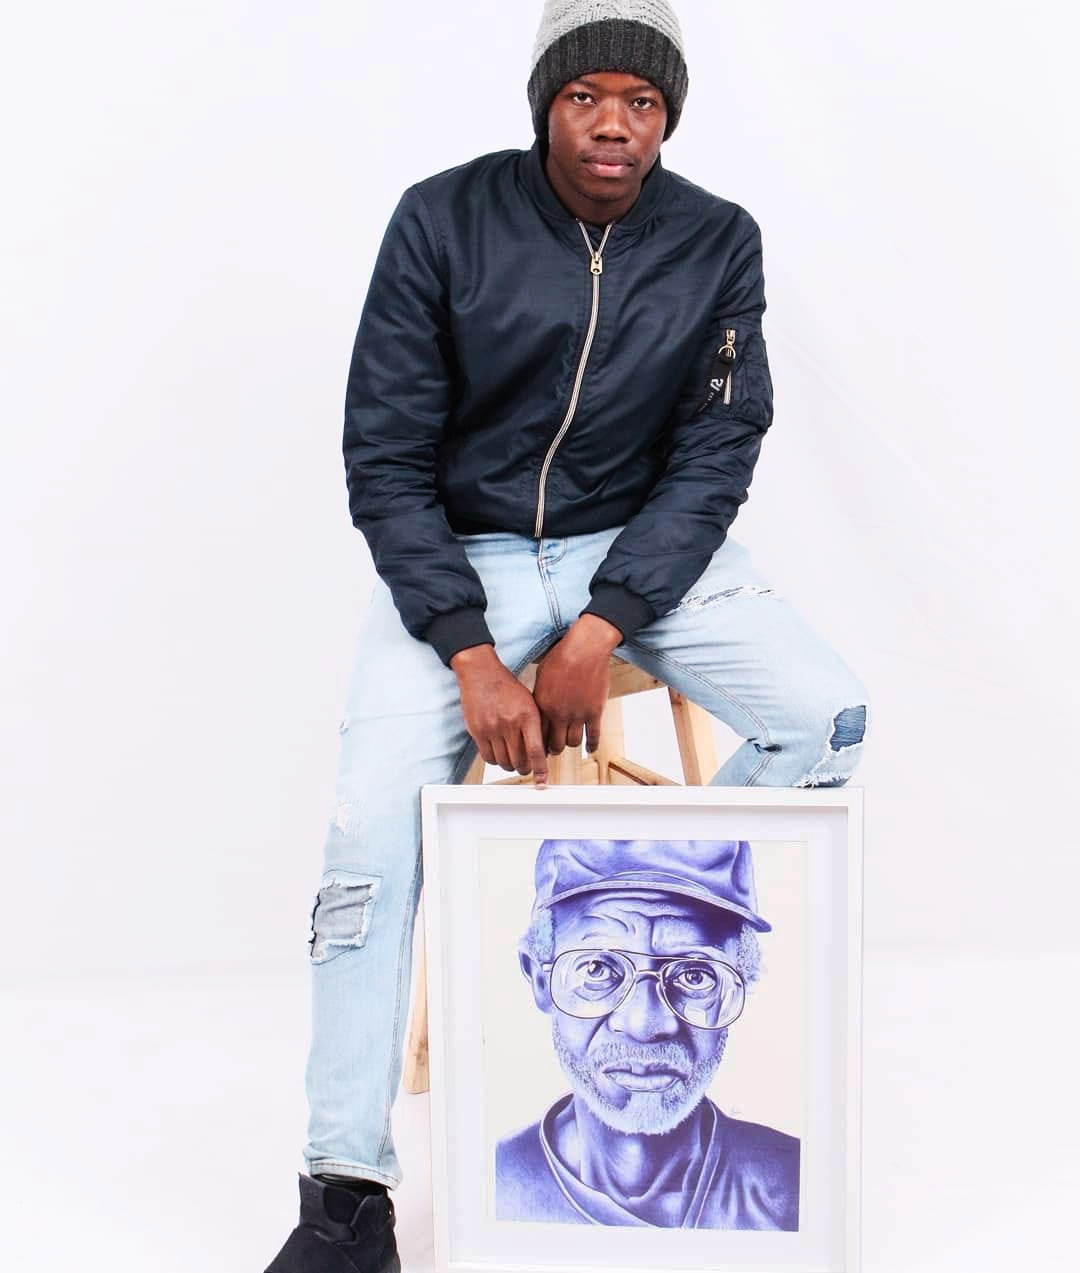 29 June 2020: Artist Zwelakhe Ngobese with the completed portrait from his 'Madala' series. (Photograph supplied)